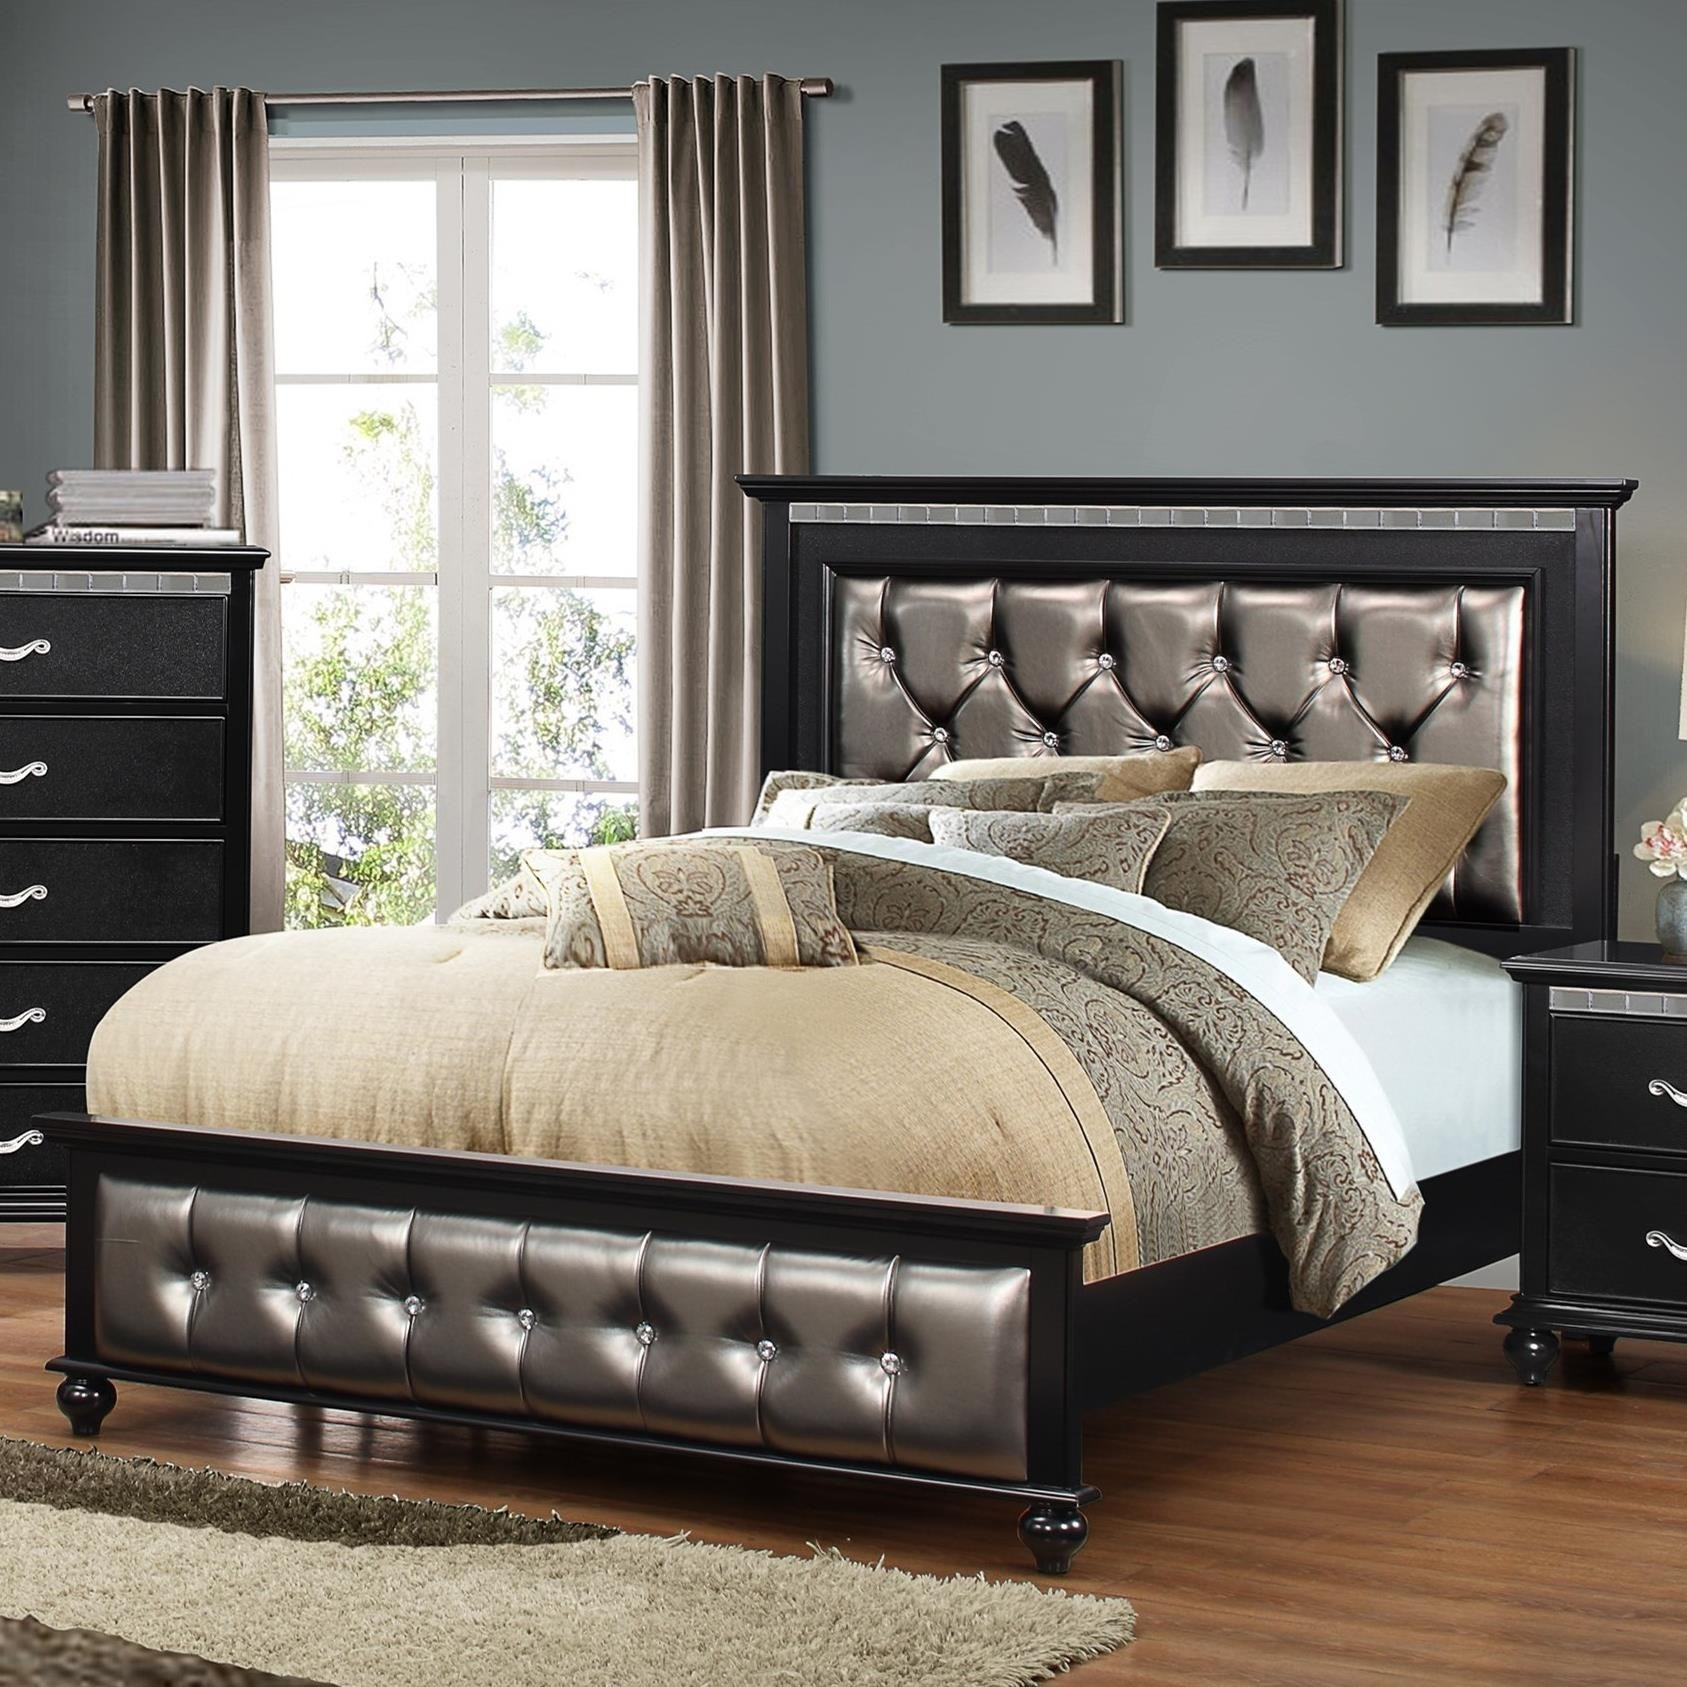 Ordinaire United Furniture Industries Hollywood 1007King Bed ...